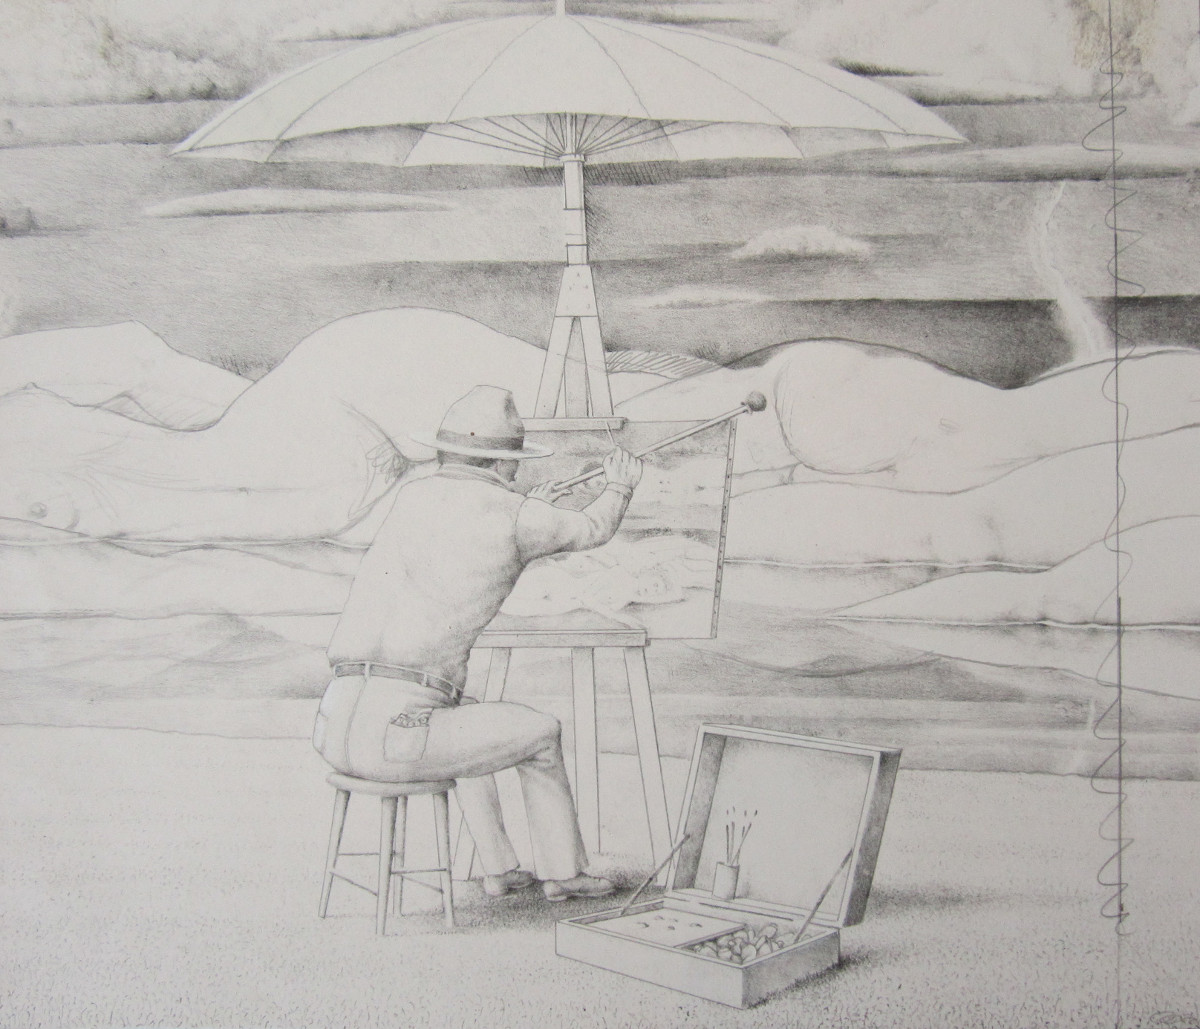 UNTITLED - STUDY FOR LECHEROUS LANDSCAPE, Pencil on Paper, 11 1/2 x 12 1/4""